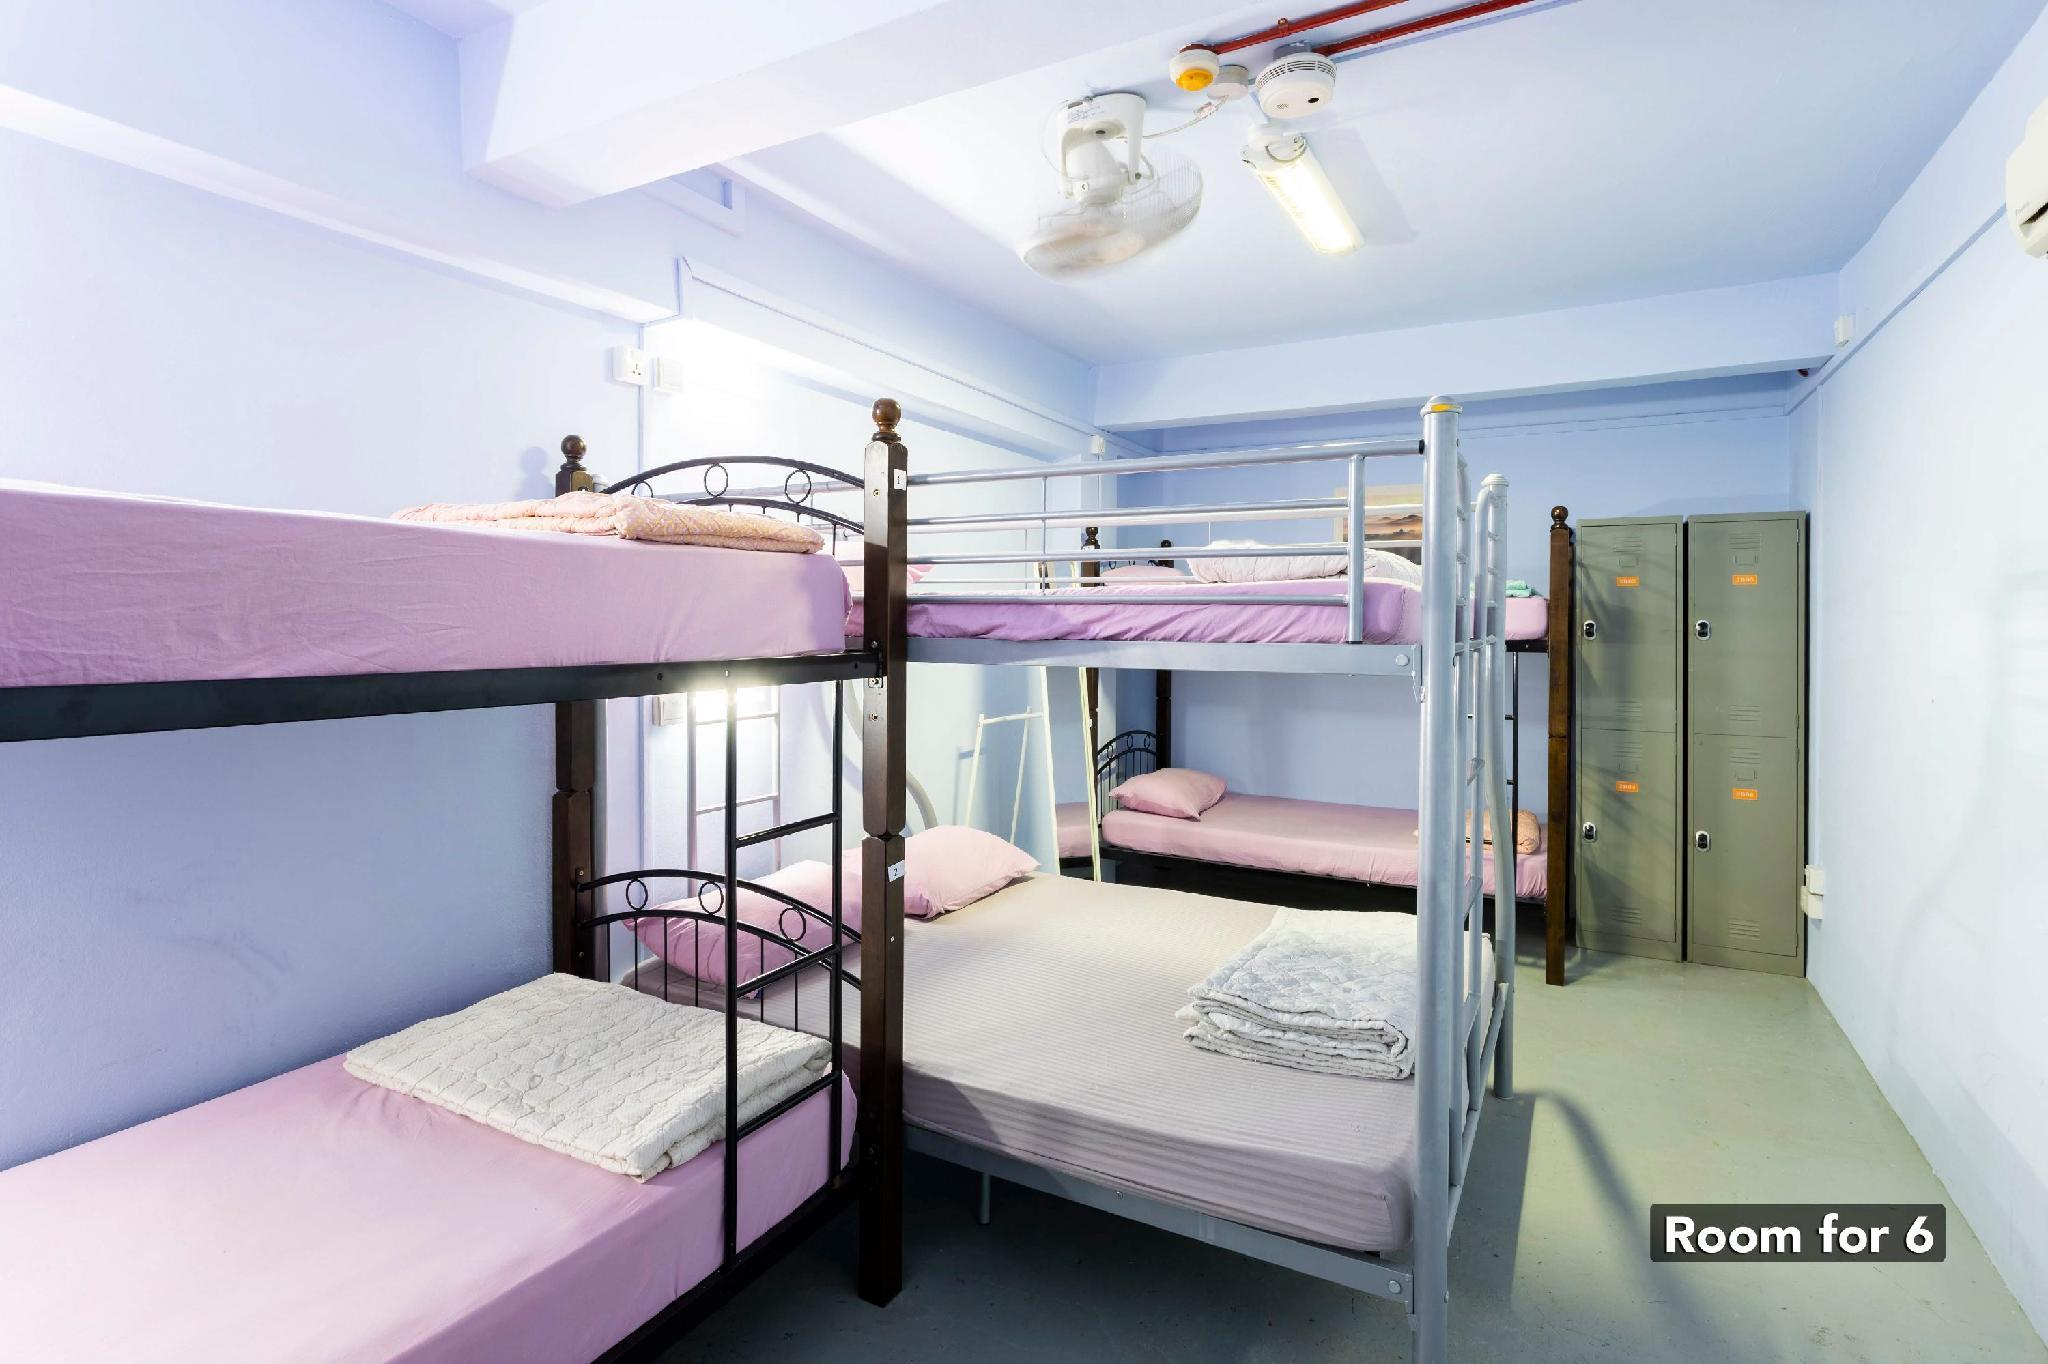 1 Person in 6-Bed Dormitory - Mixed